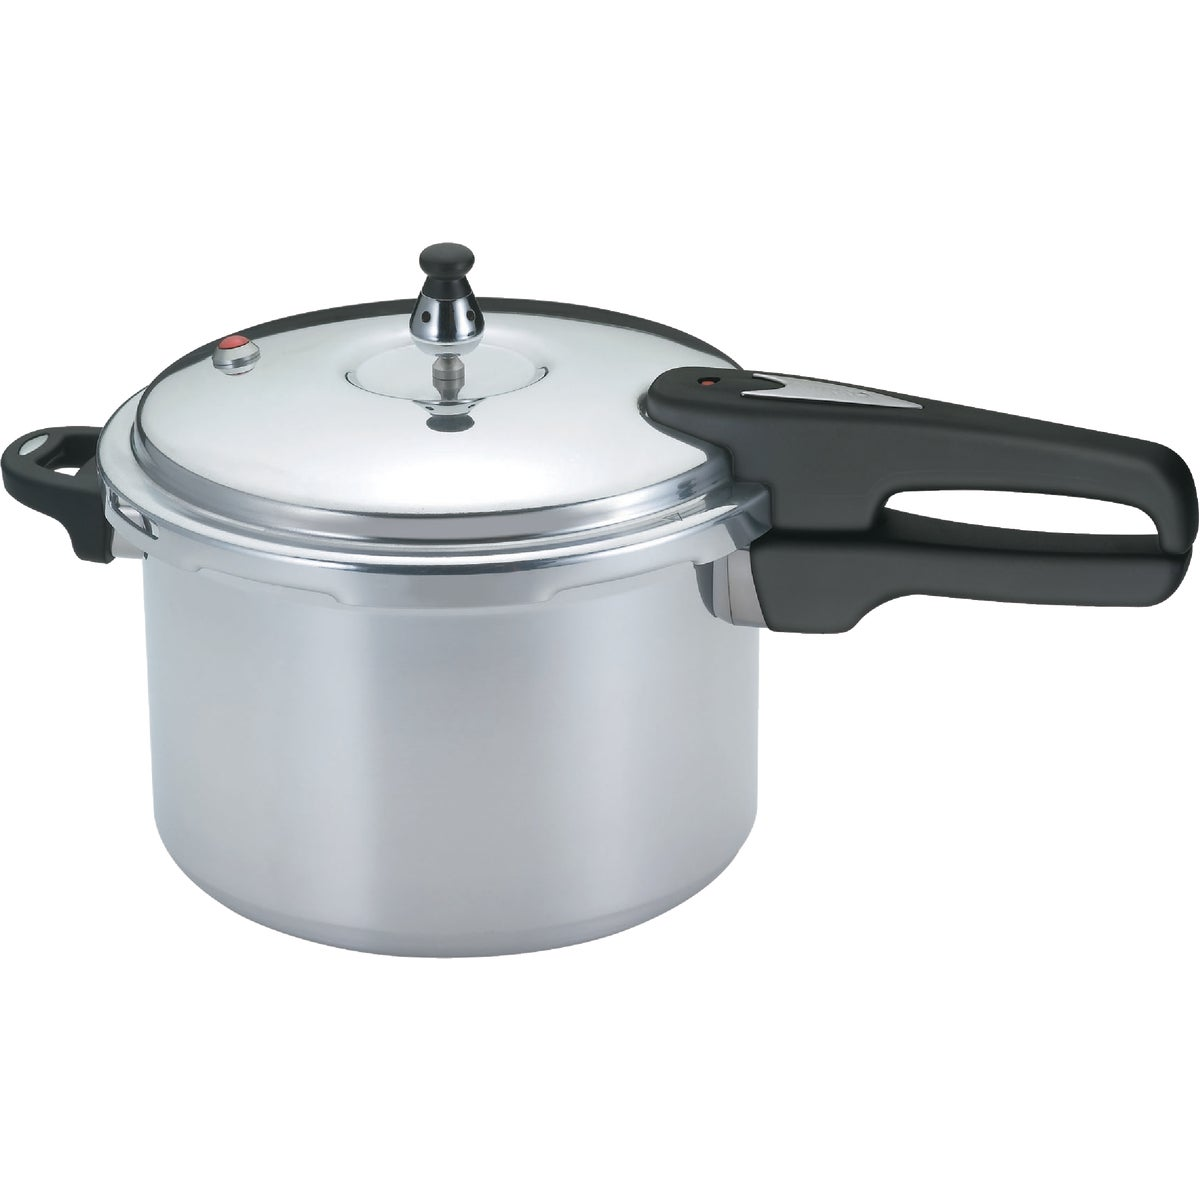 6QT PRESSURE COOKER - 92160A by T Fal Wearever